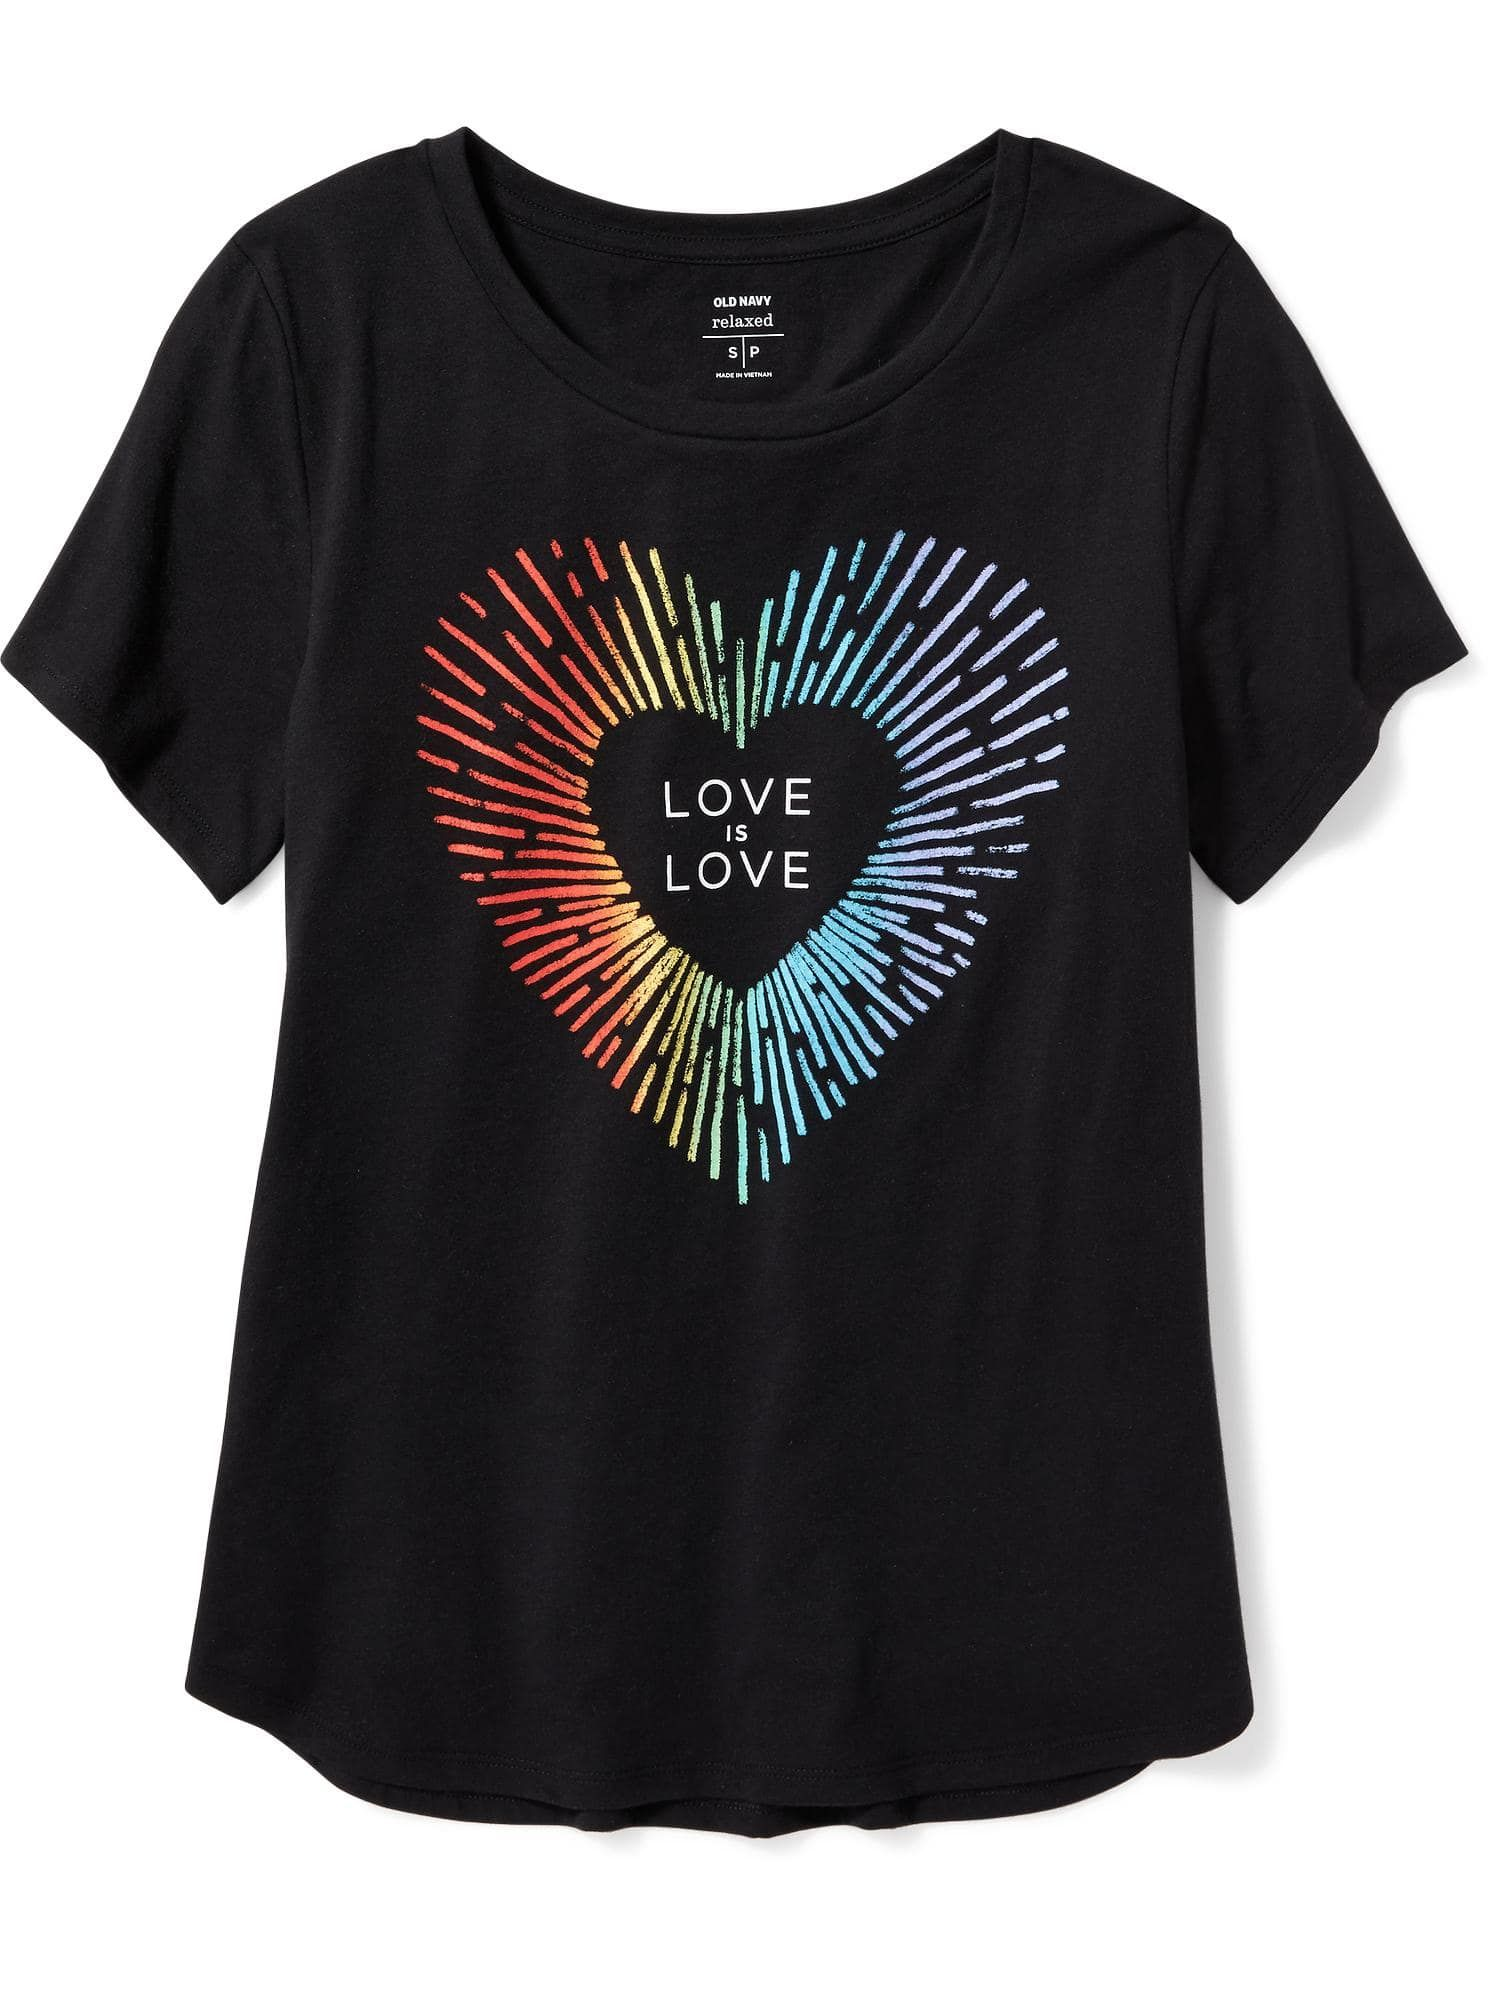 Black t shirt old navy - 2017 Pride Graphic Curved Hem Tee For Women Old Navy